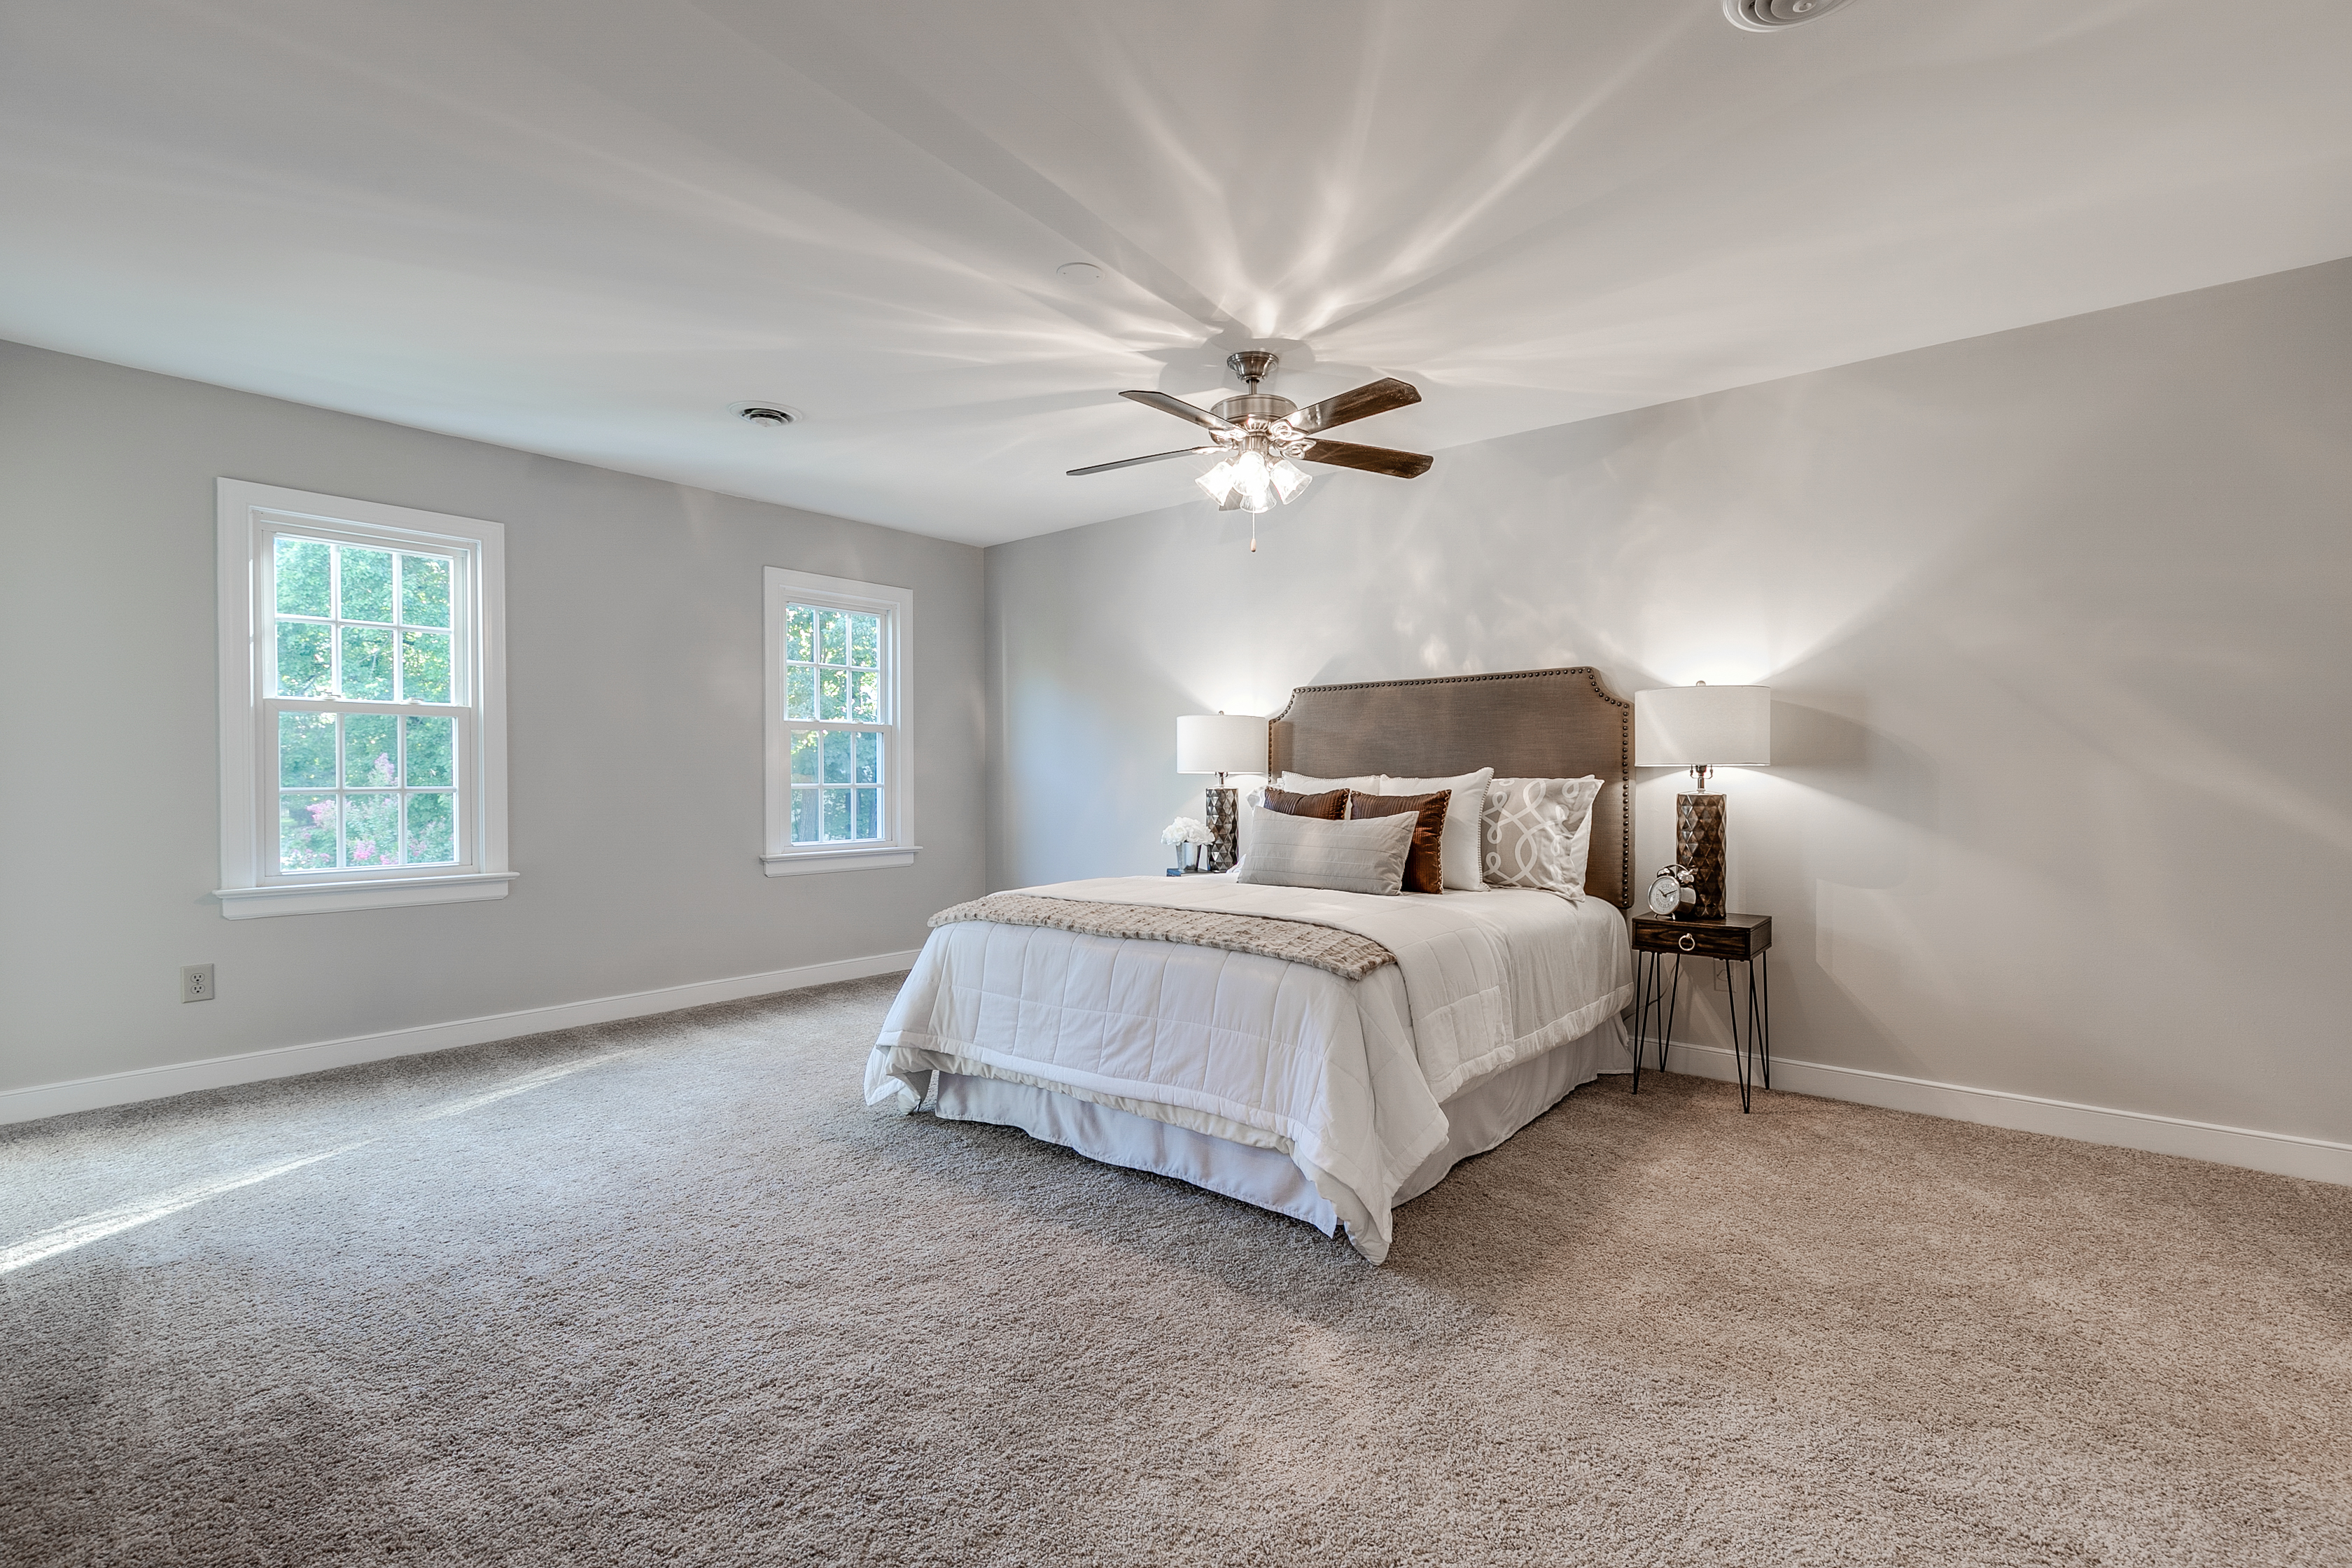 Master Bedroom at 2708 Empress Court, Henrico by RVA Home Team powered by eXp Realty